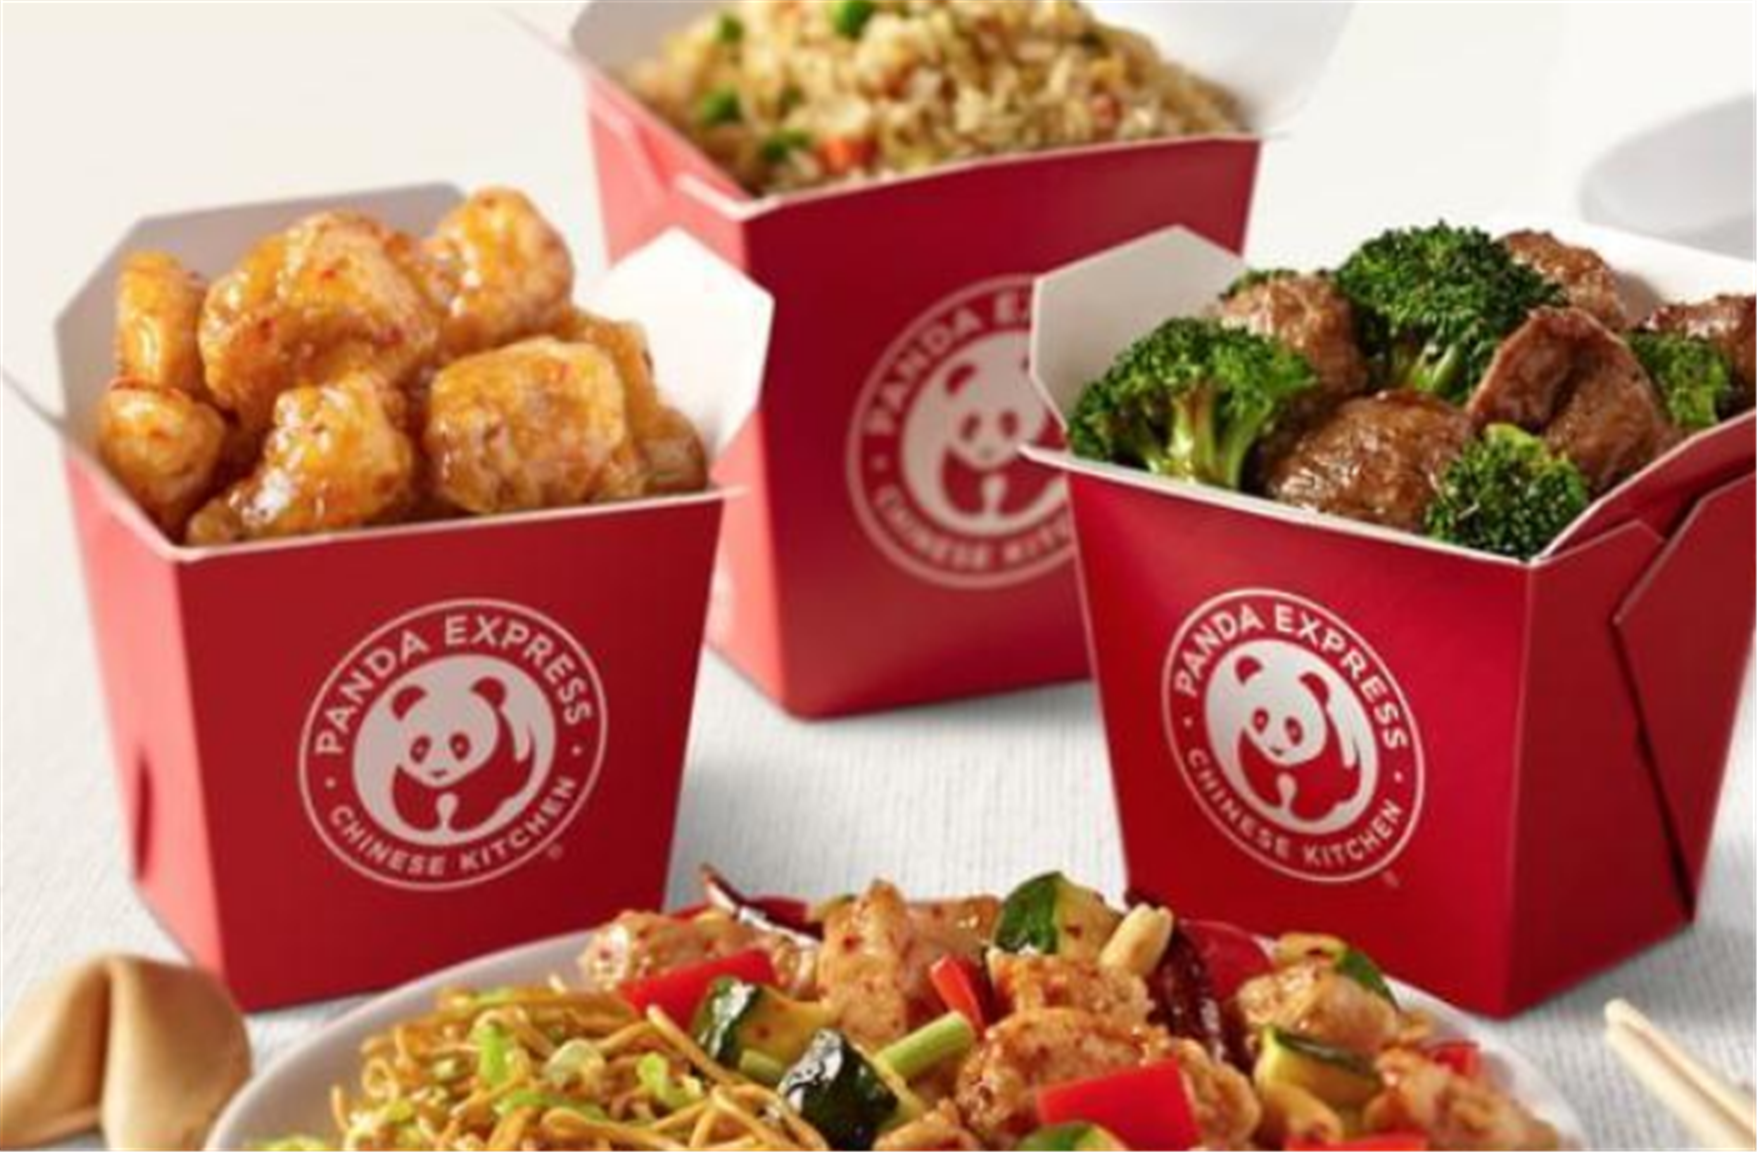 Panda Express – $10 Off Family Feasts (2 Large Sides + 3 Large Entrees)